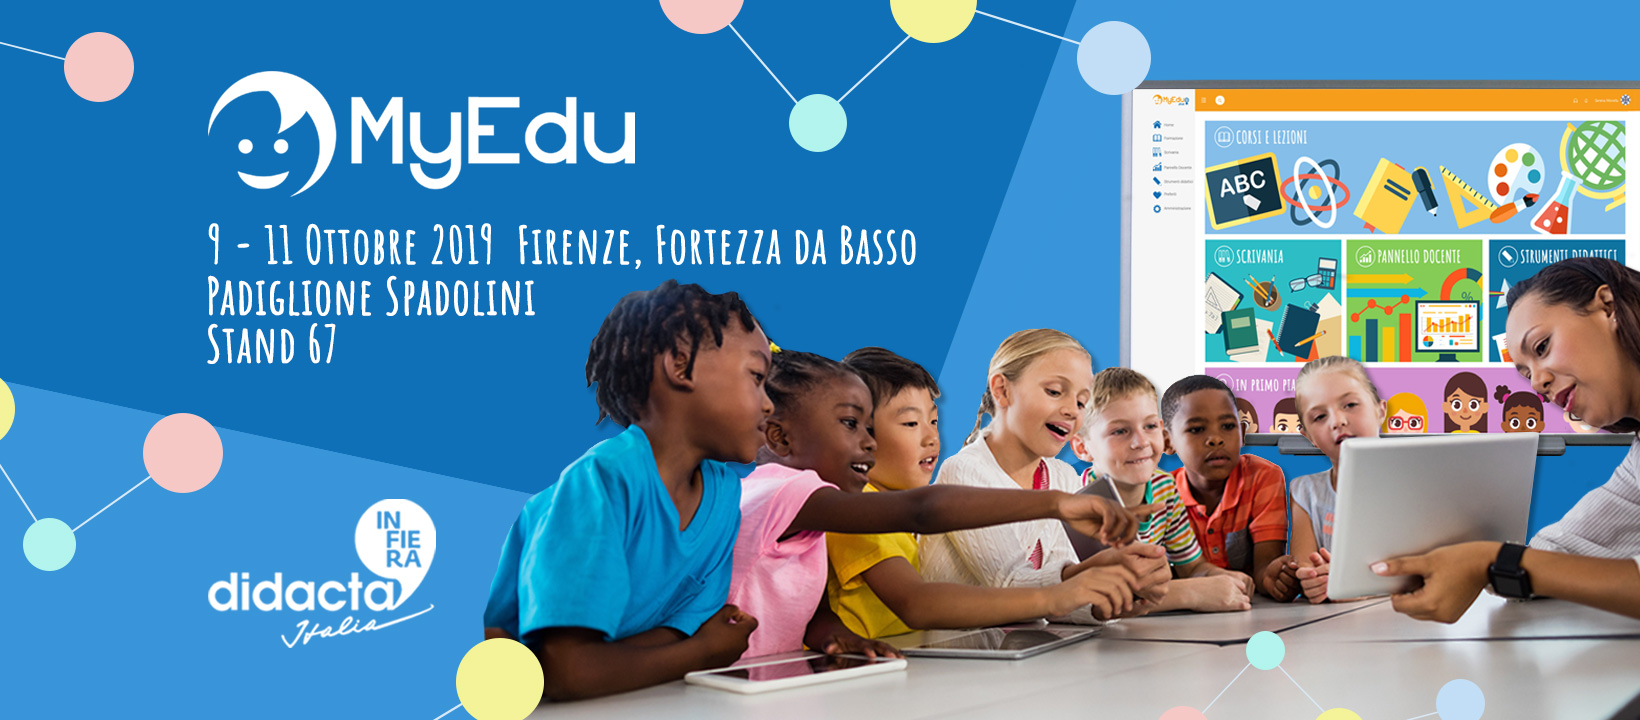 FME Education: progetto MyEdu